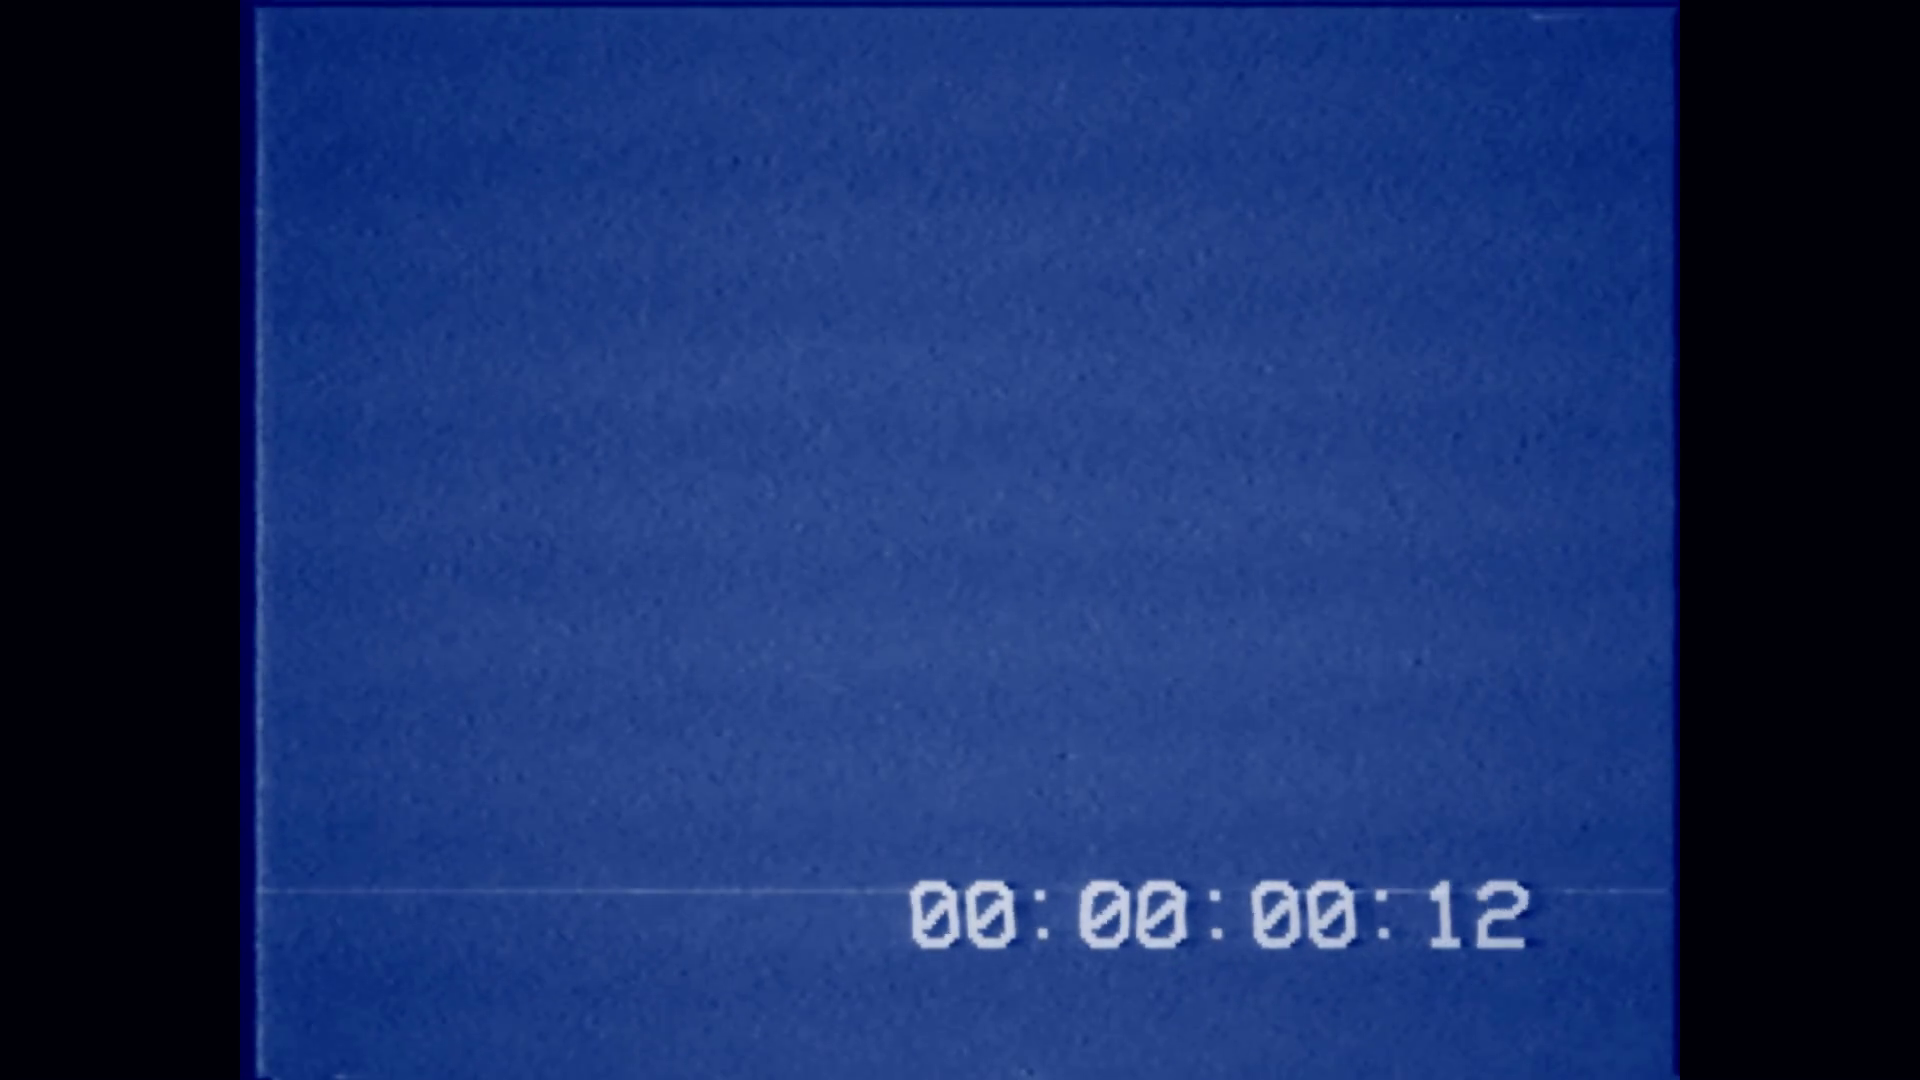 VHS bad 30 seconds timecode blue. An old bad VHS tape playing. Blue screen  with timecode. A vintage background for videos, a retro element. - Vhs PNG